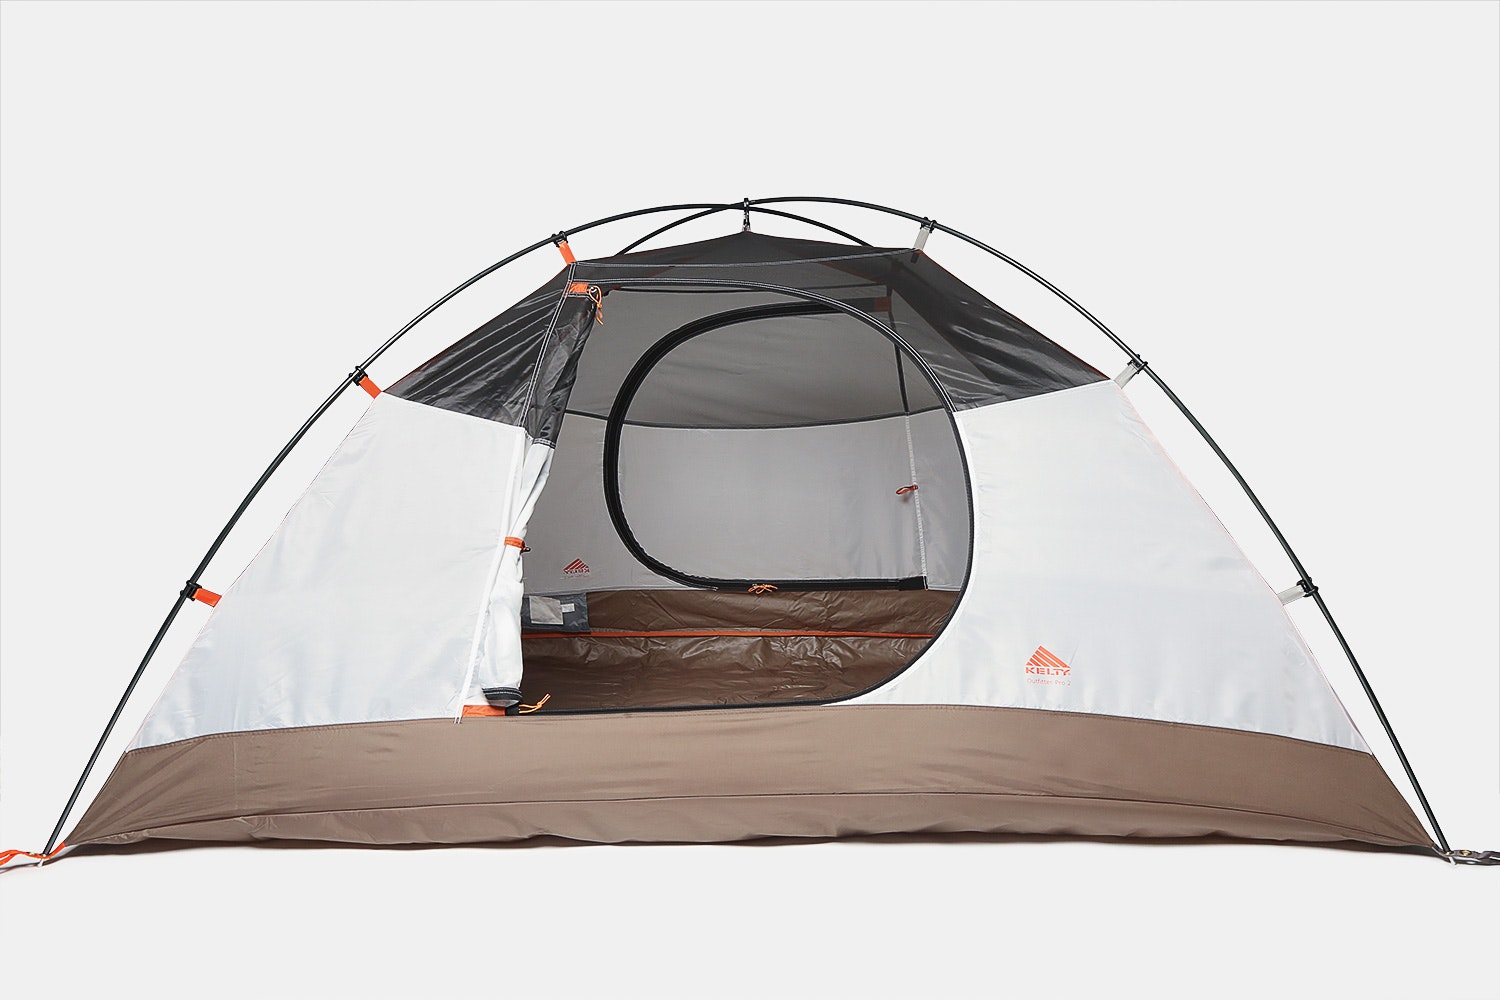 Kelty Outfitter Pro Tents